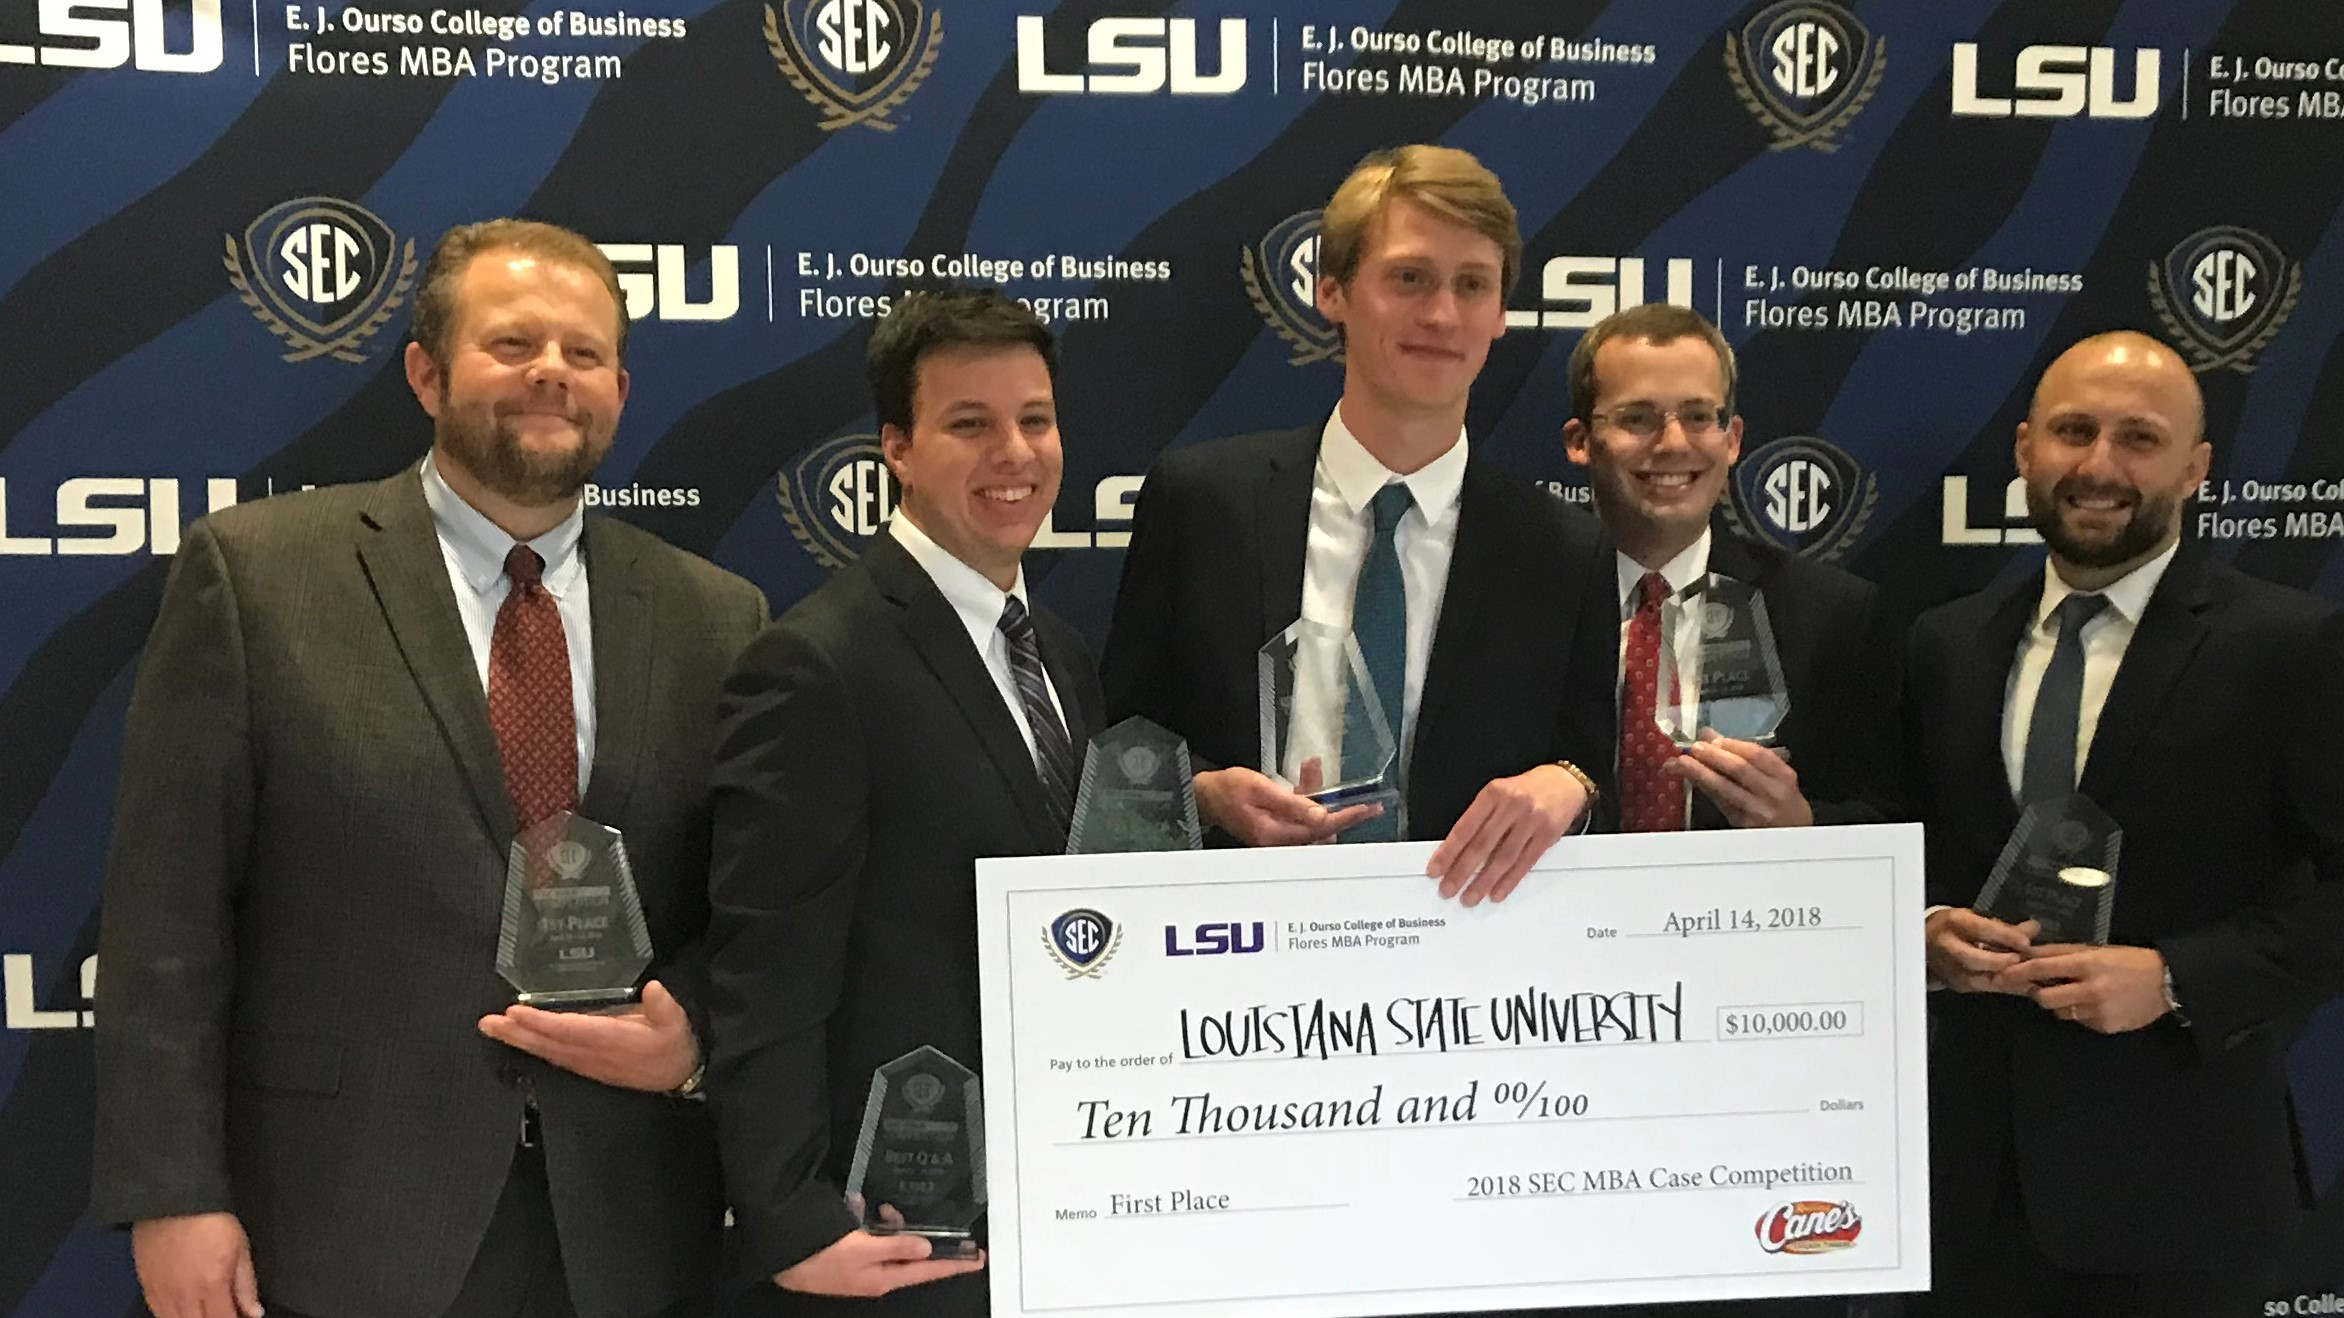 LSU Wins 2018 SEC MBA Case Competition